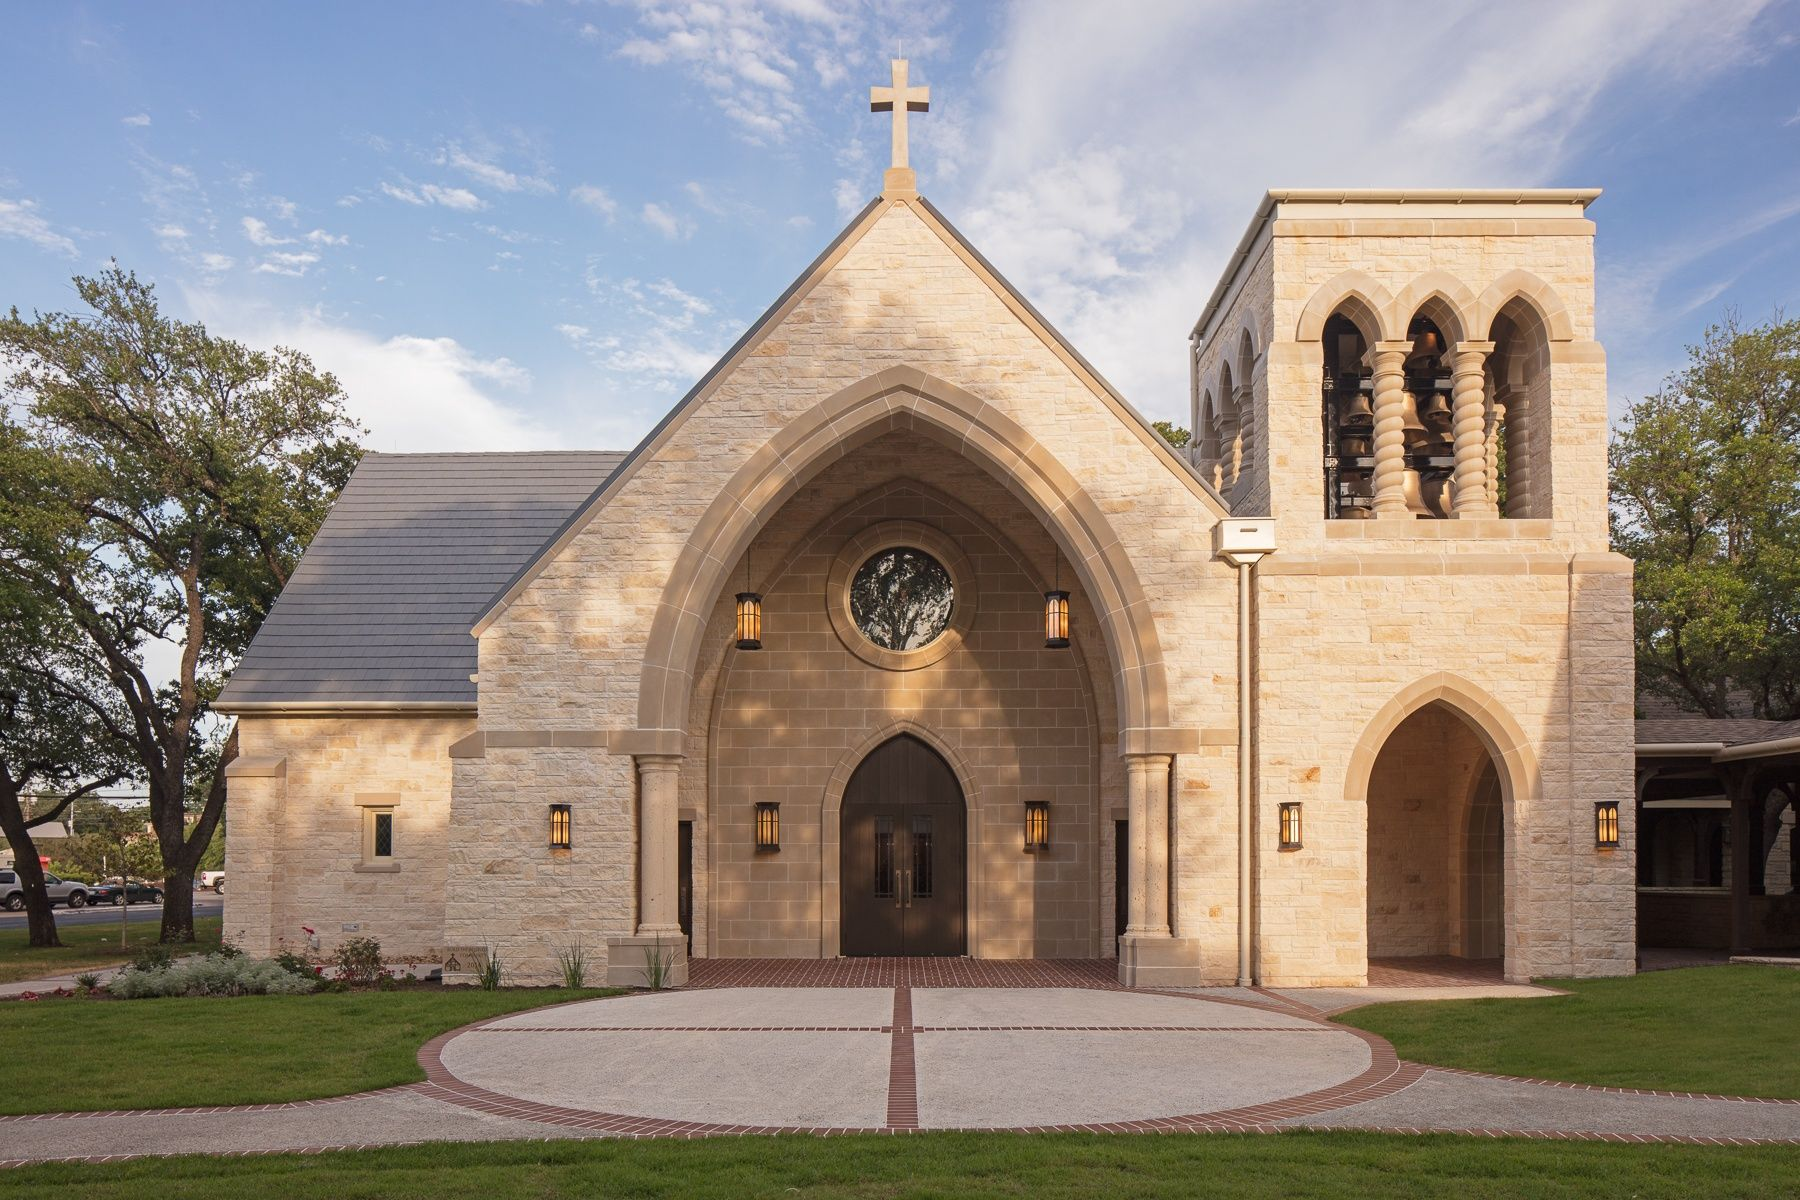 The completion of the main facade and Narthex courtesy of Heimsath Architects.